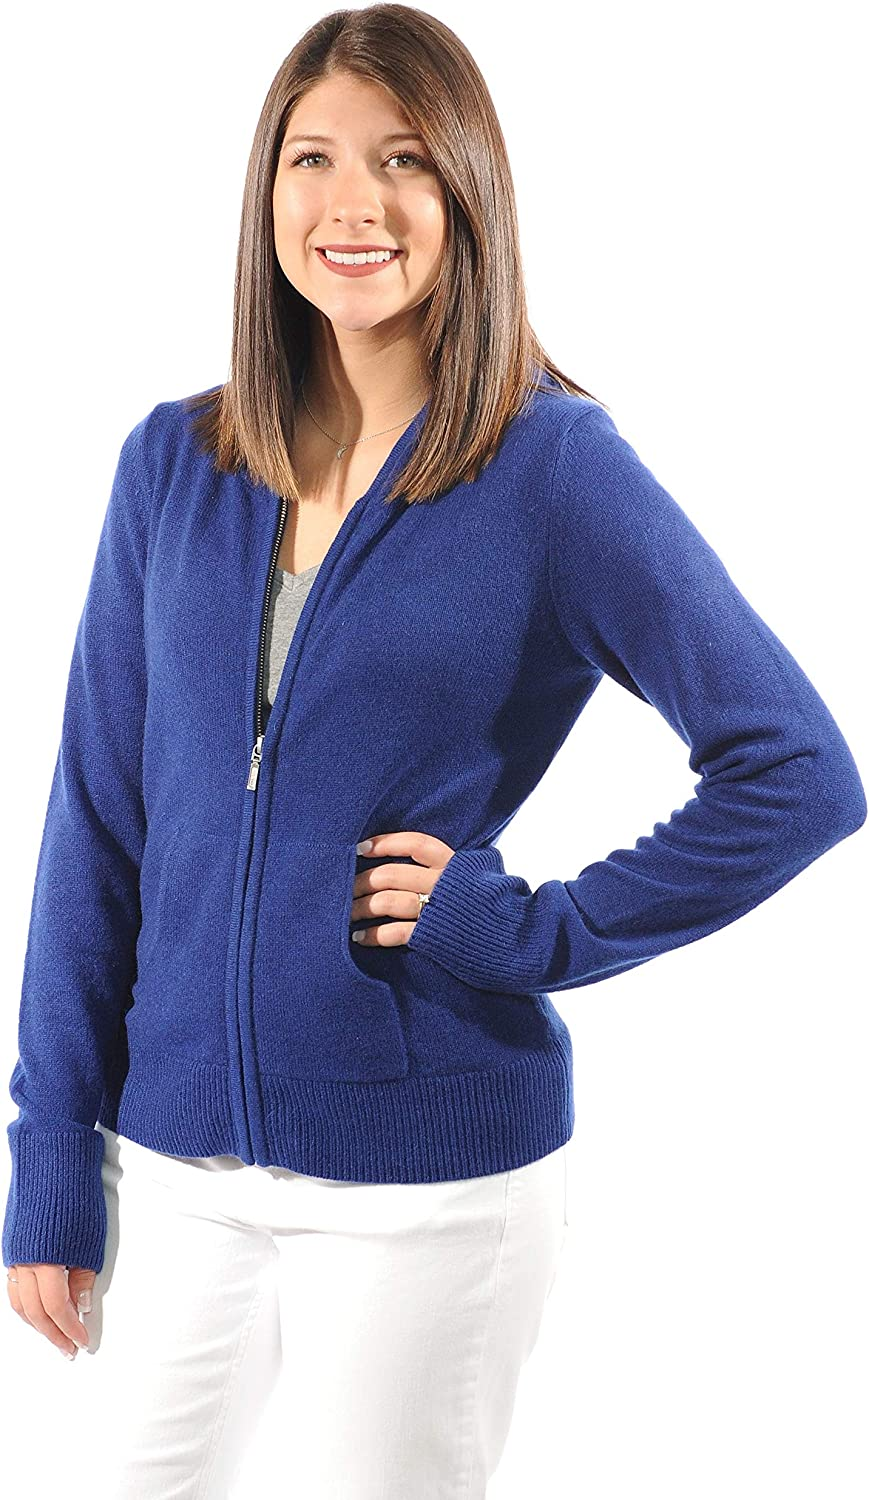 Gigi Reaume Women's Hoodie Sweater, 100% Cashmere, Zip Up with Front Pockets, Long Sleeve Cardigan